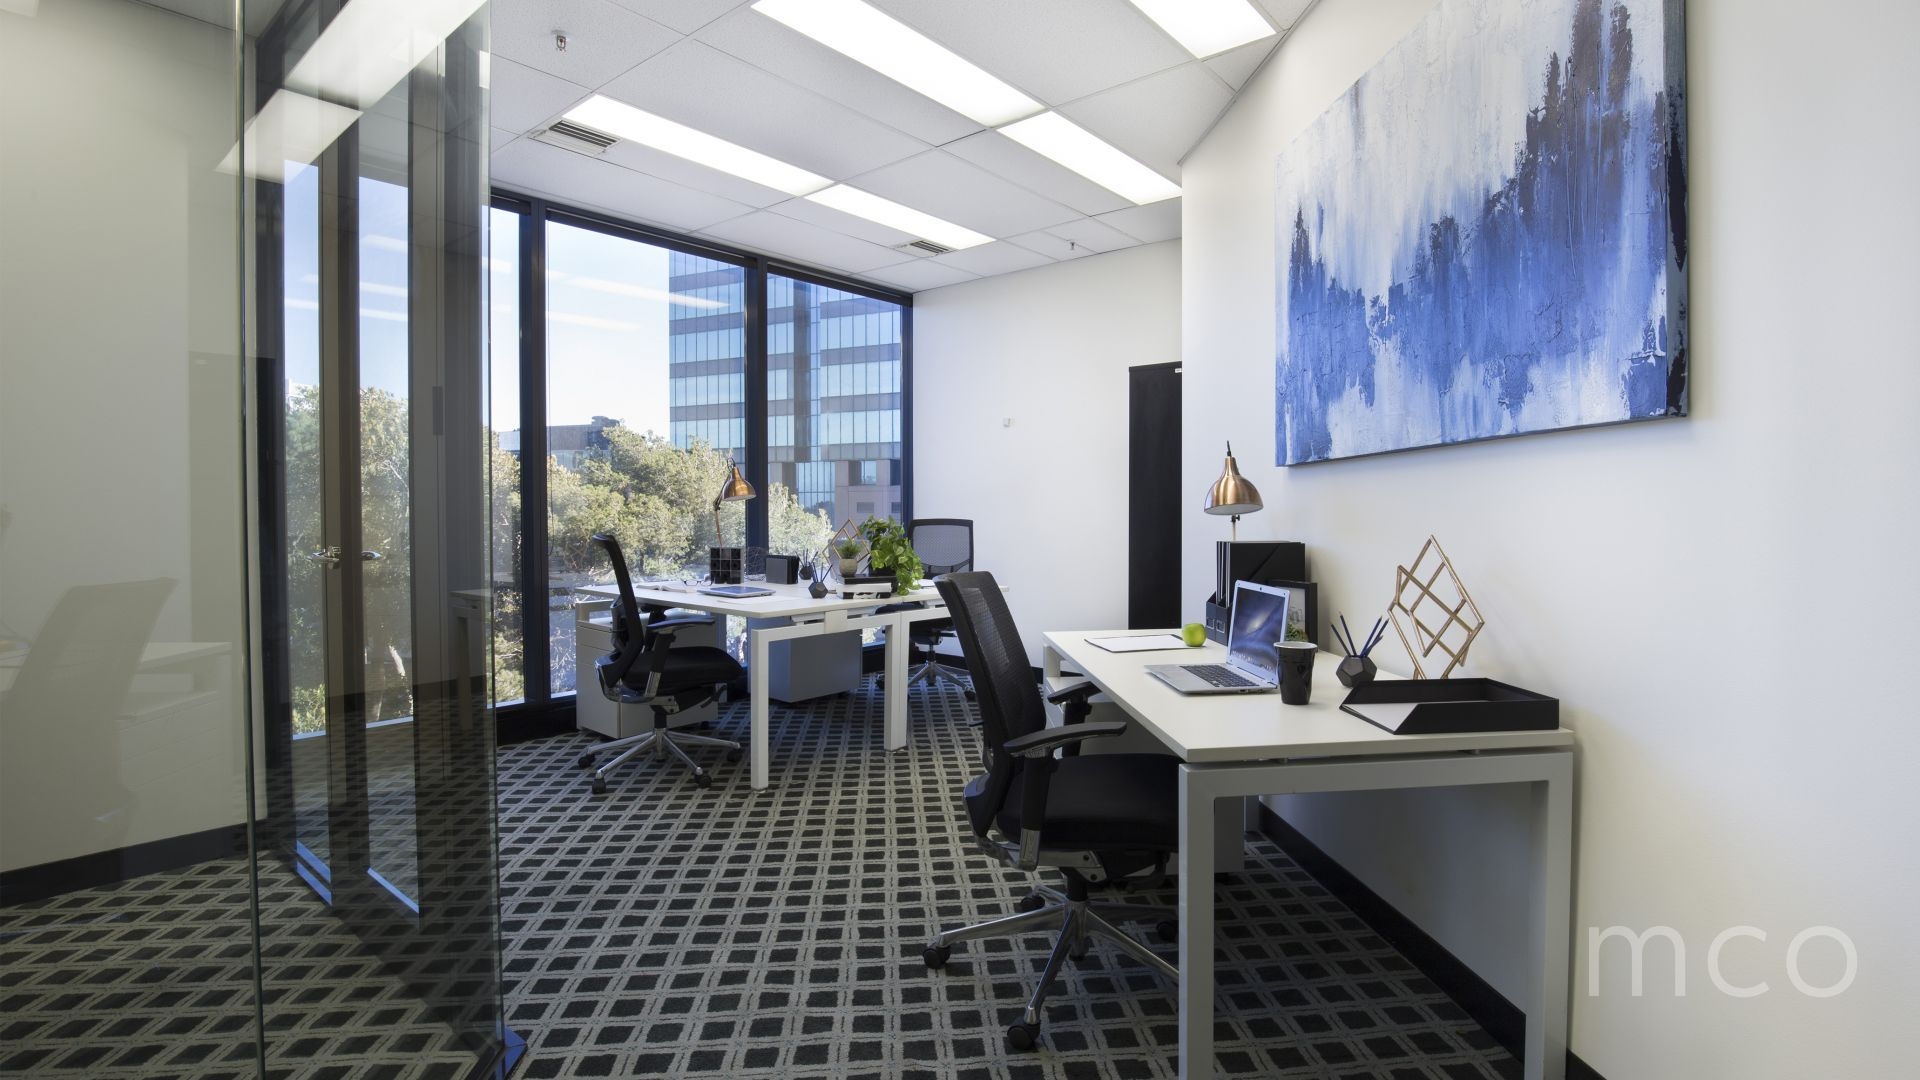 Great opportunity to occupy or invest an impressive office at a low entry price